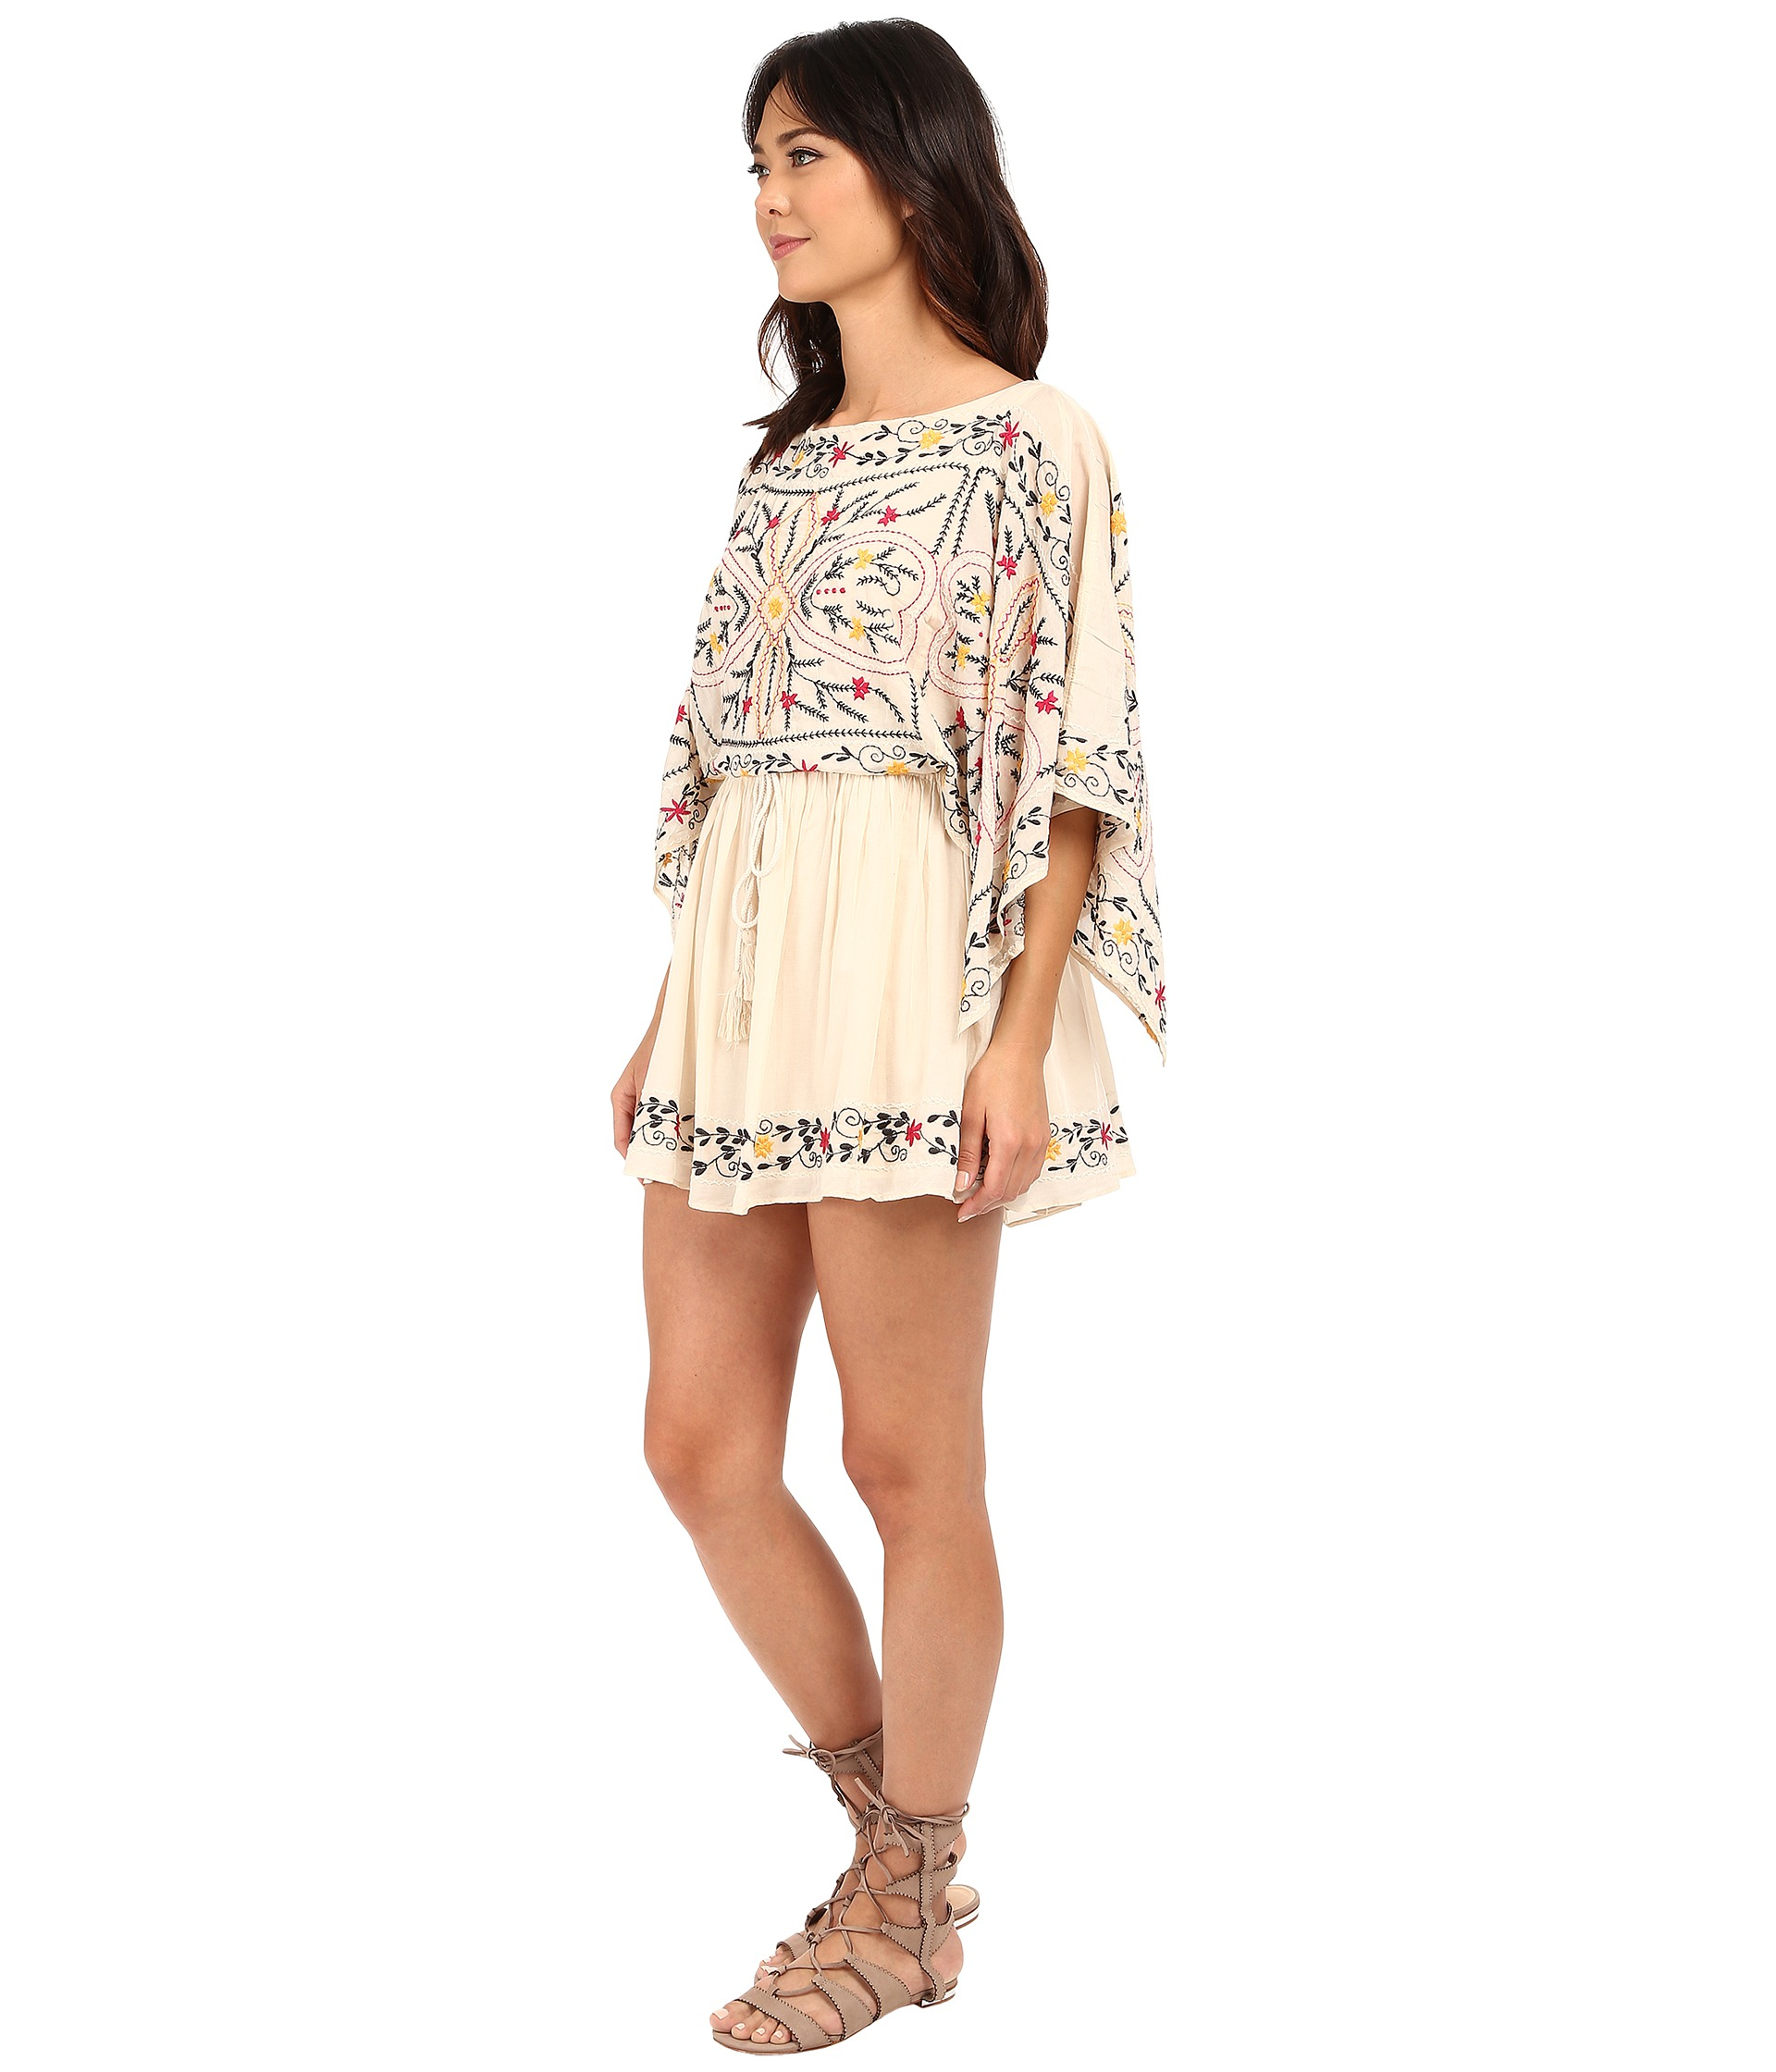 d9b43607cf6 Lyst - Free People Frida Embroidered Dress in White